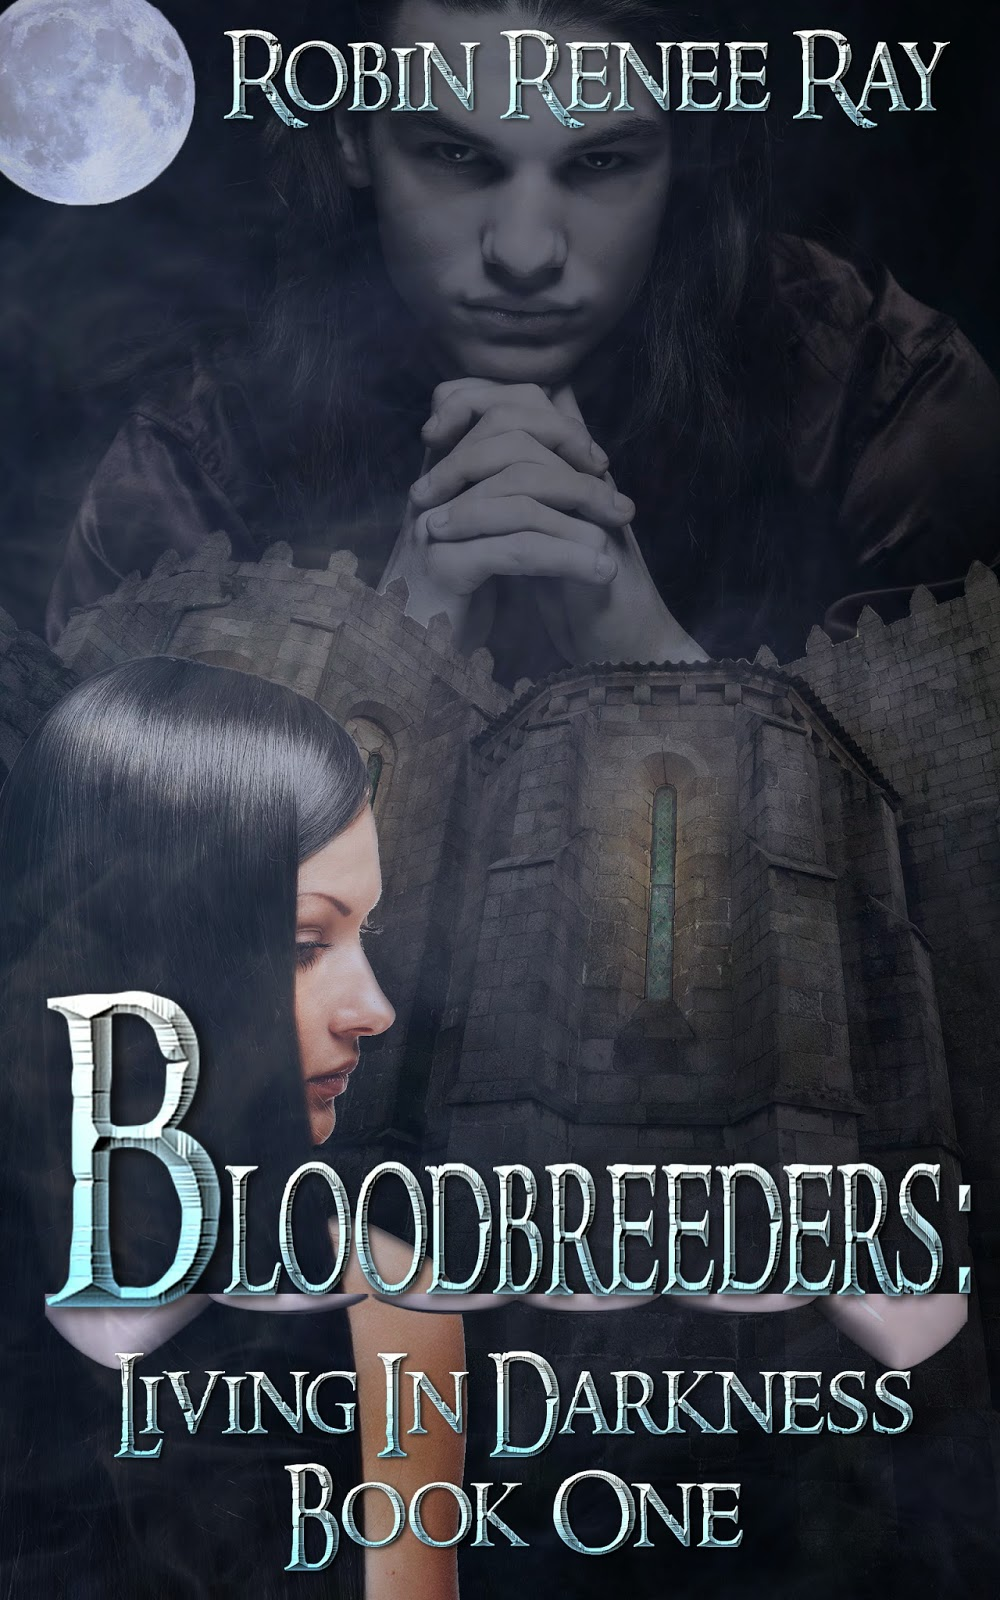 http://www.amazon.com/Bloodbreeders-Darkness-Robin-Renee-Ray-ebook/dp/B00F587YP6/ref=asap_bc?ie=UTF8